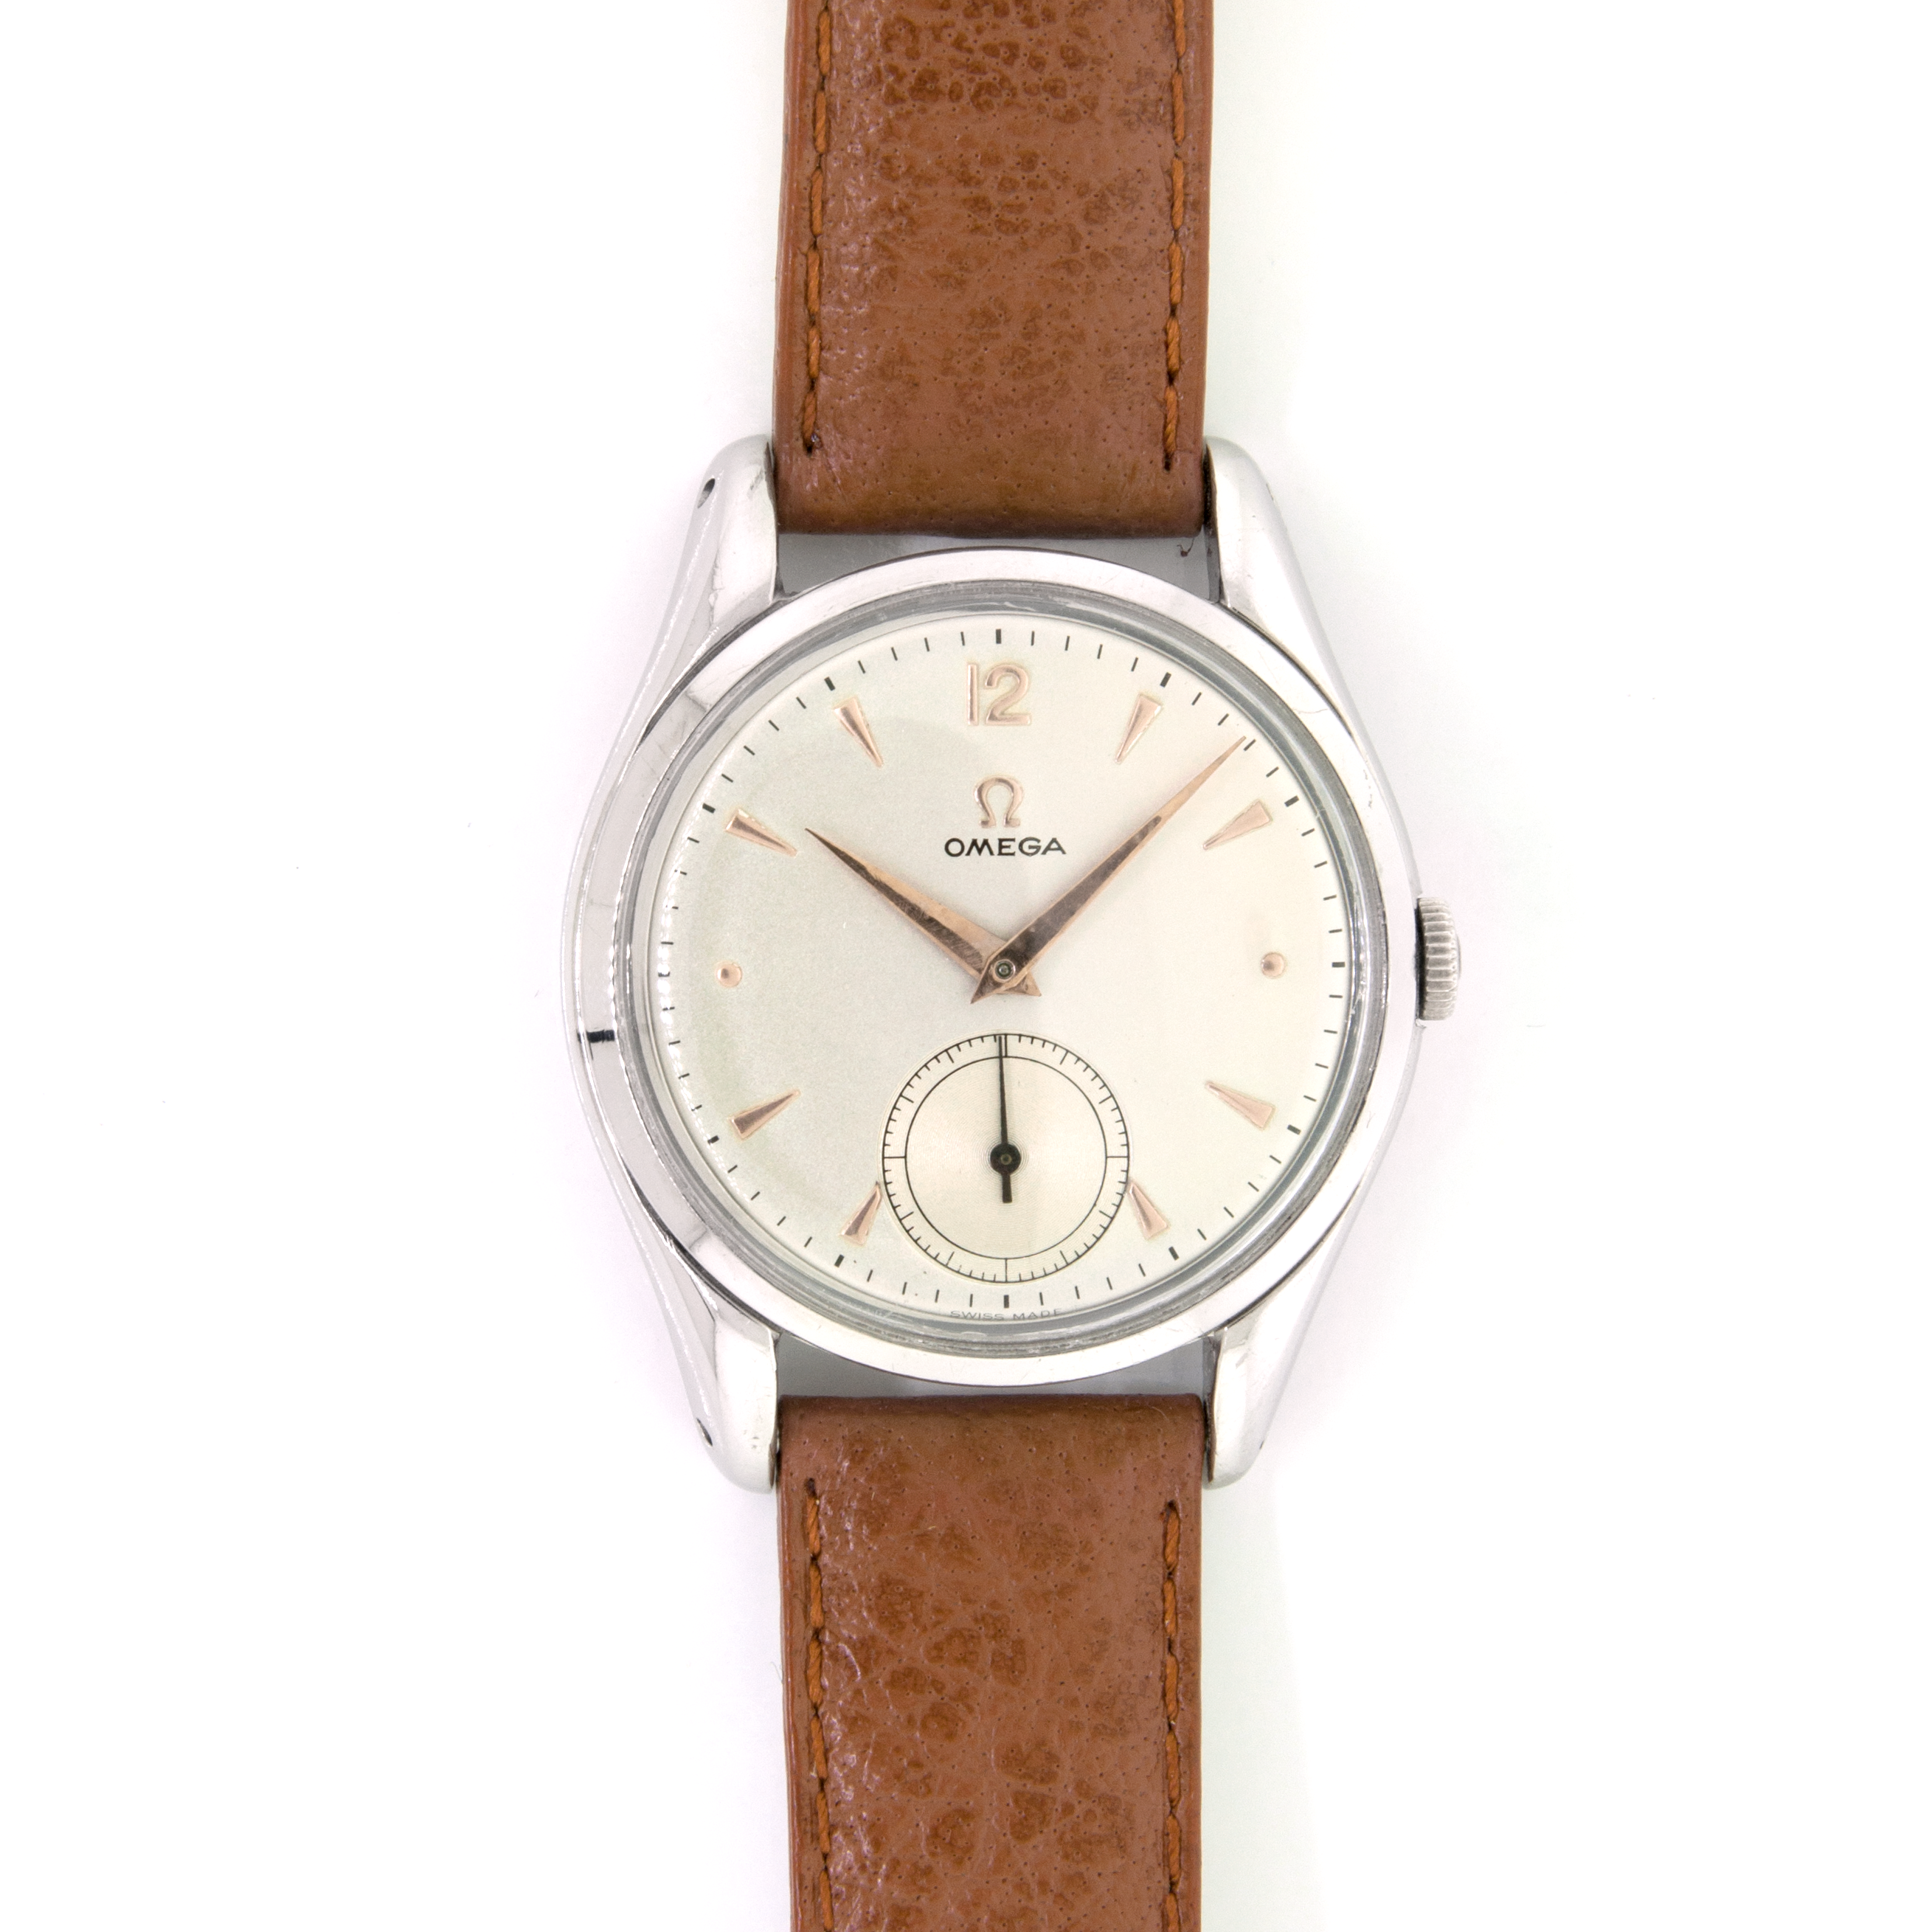 Omega Stainless Steel Leather Strap Watch